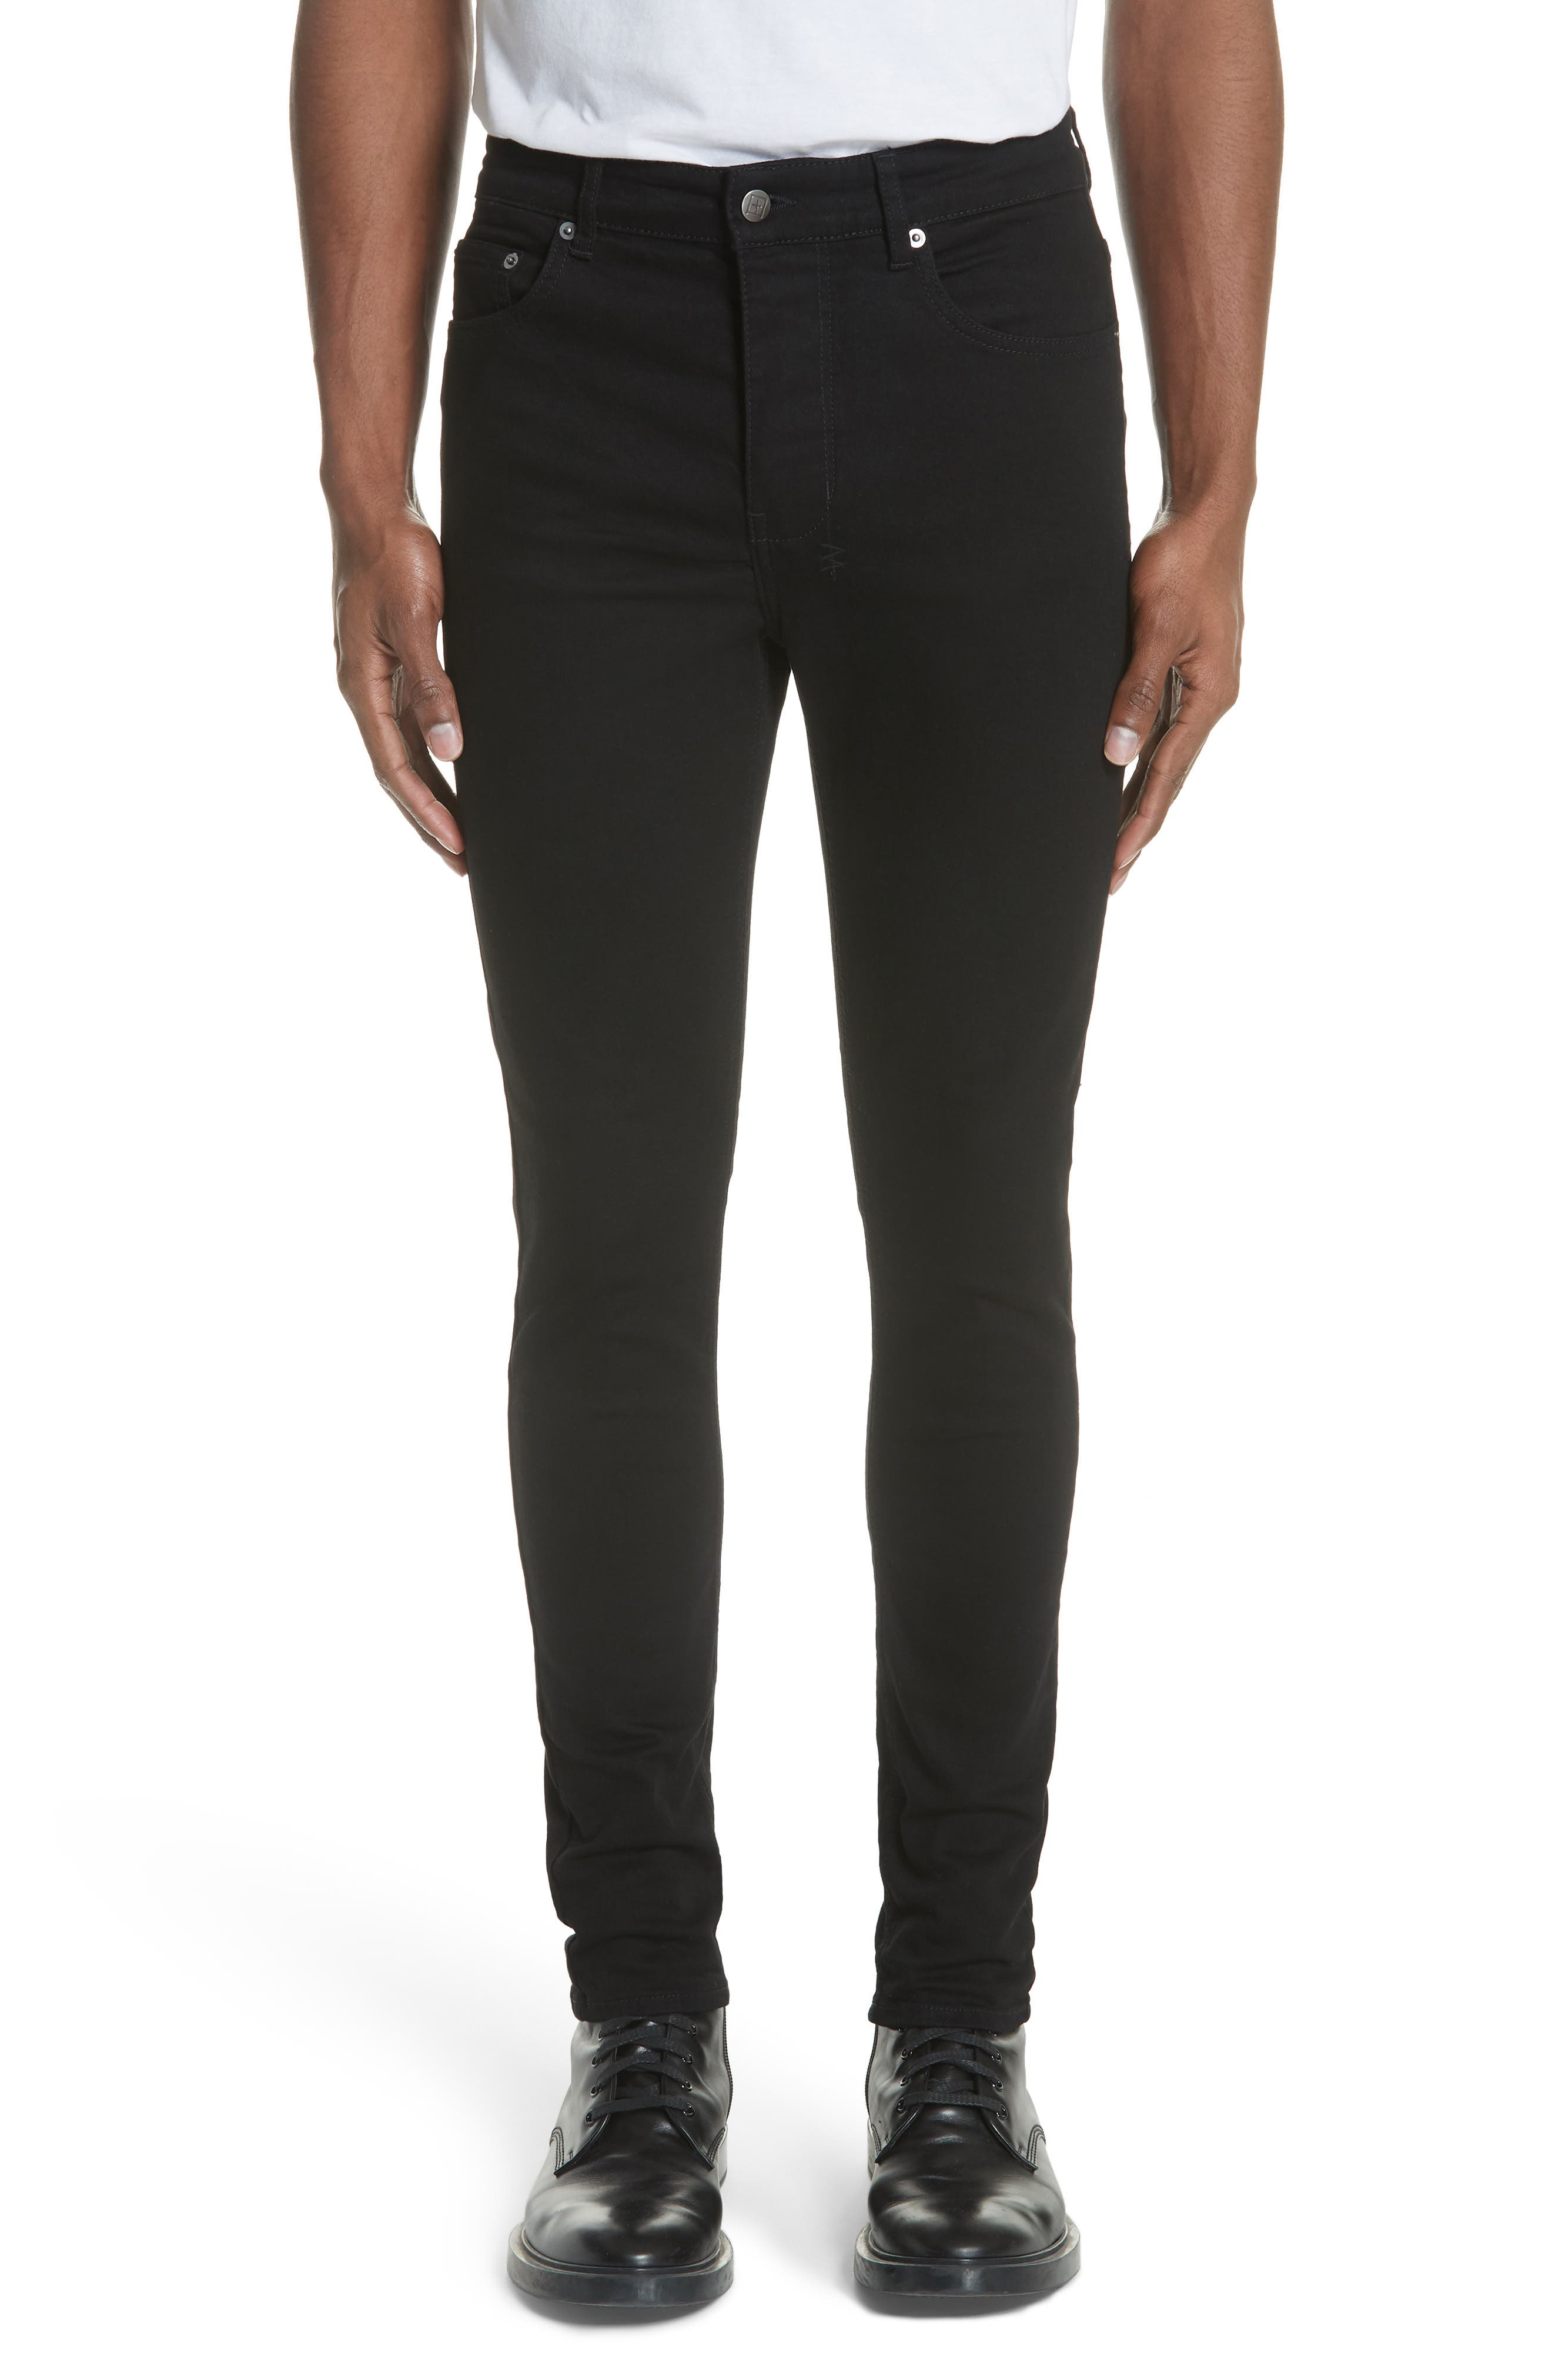 Chitch Laid Skinny Fit Jeans,                             Main thumbnail 1, color,                             BLACK